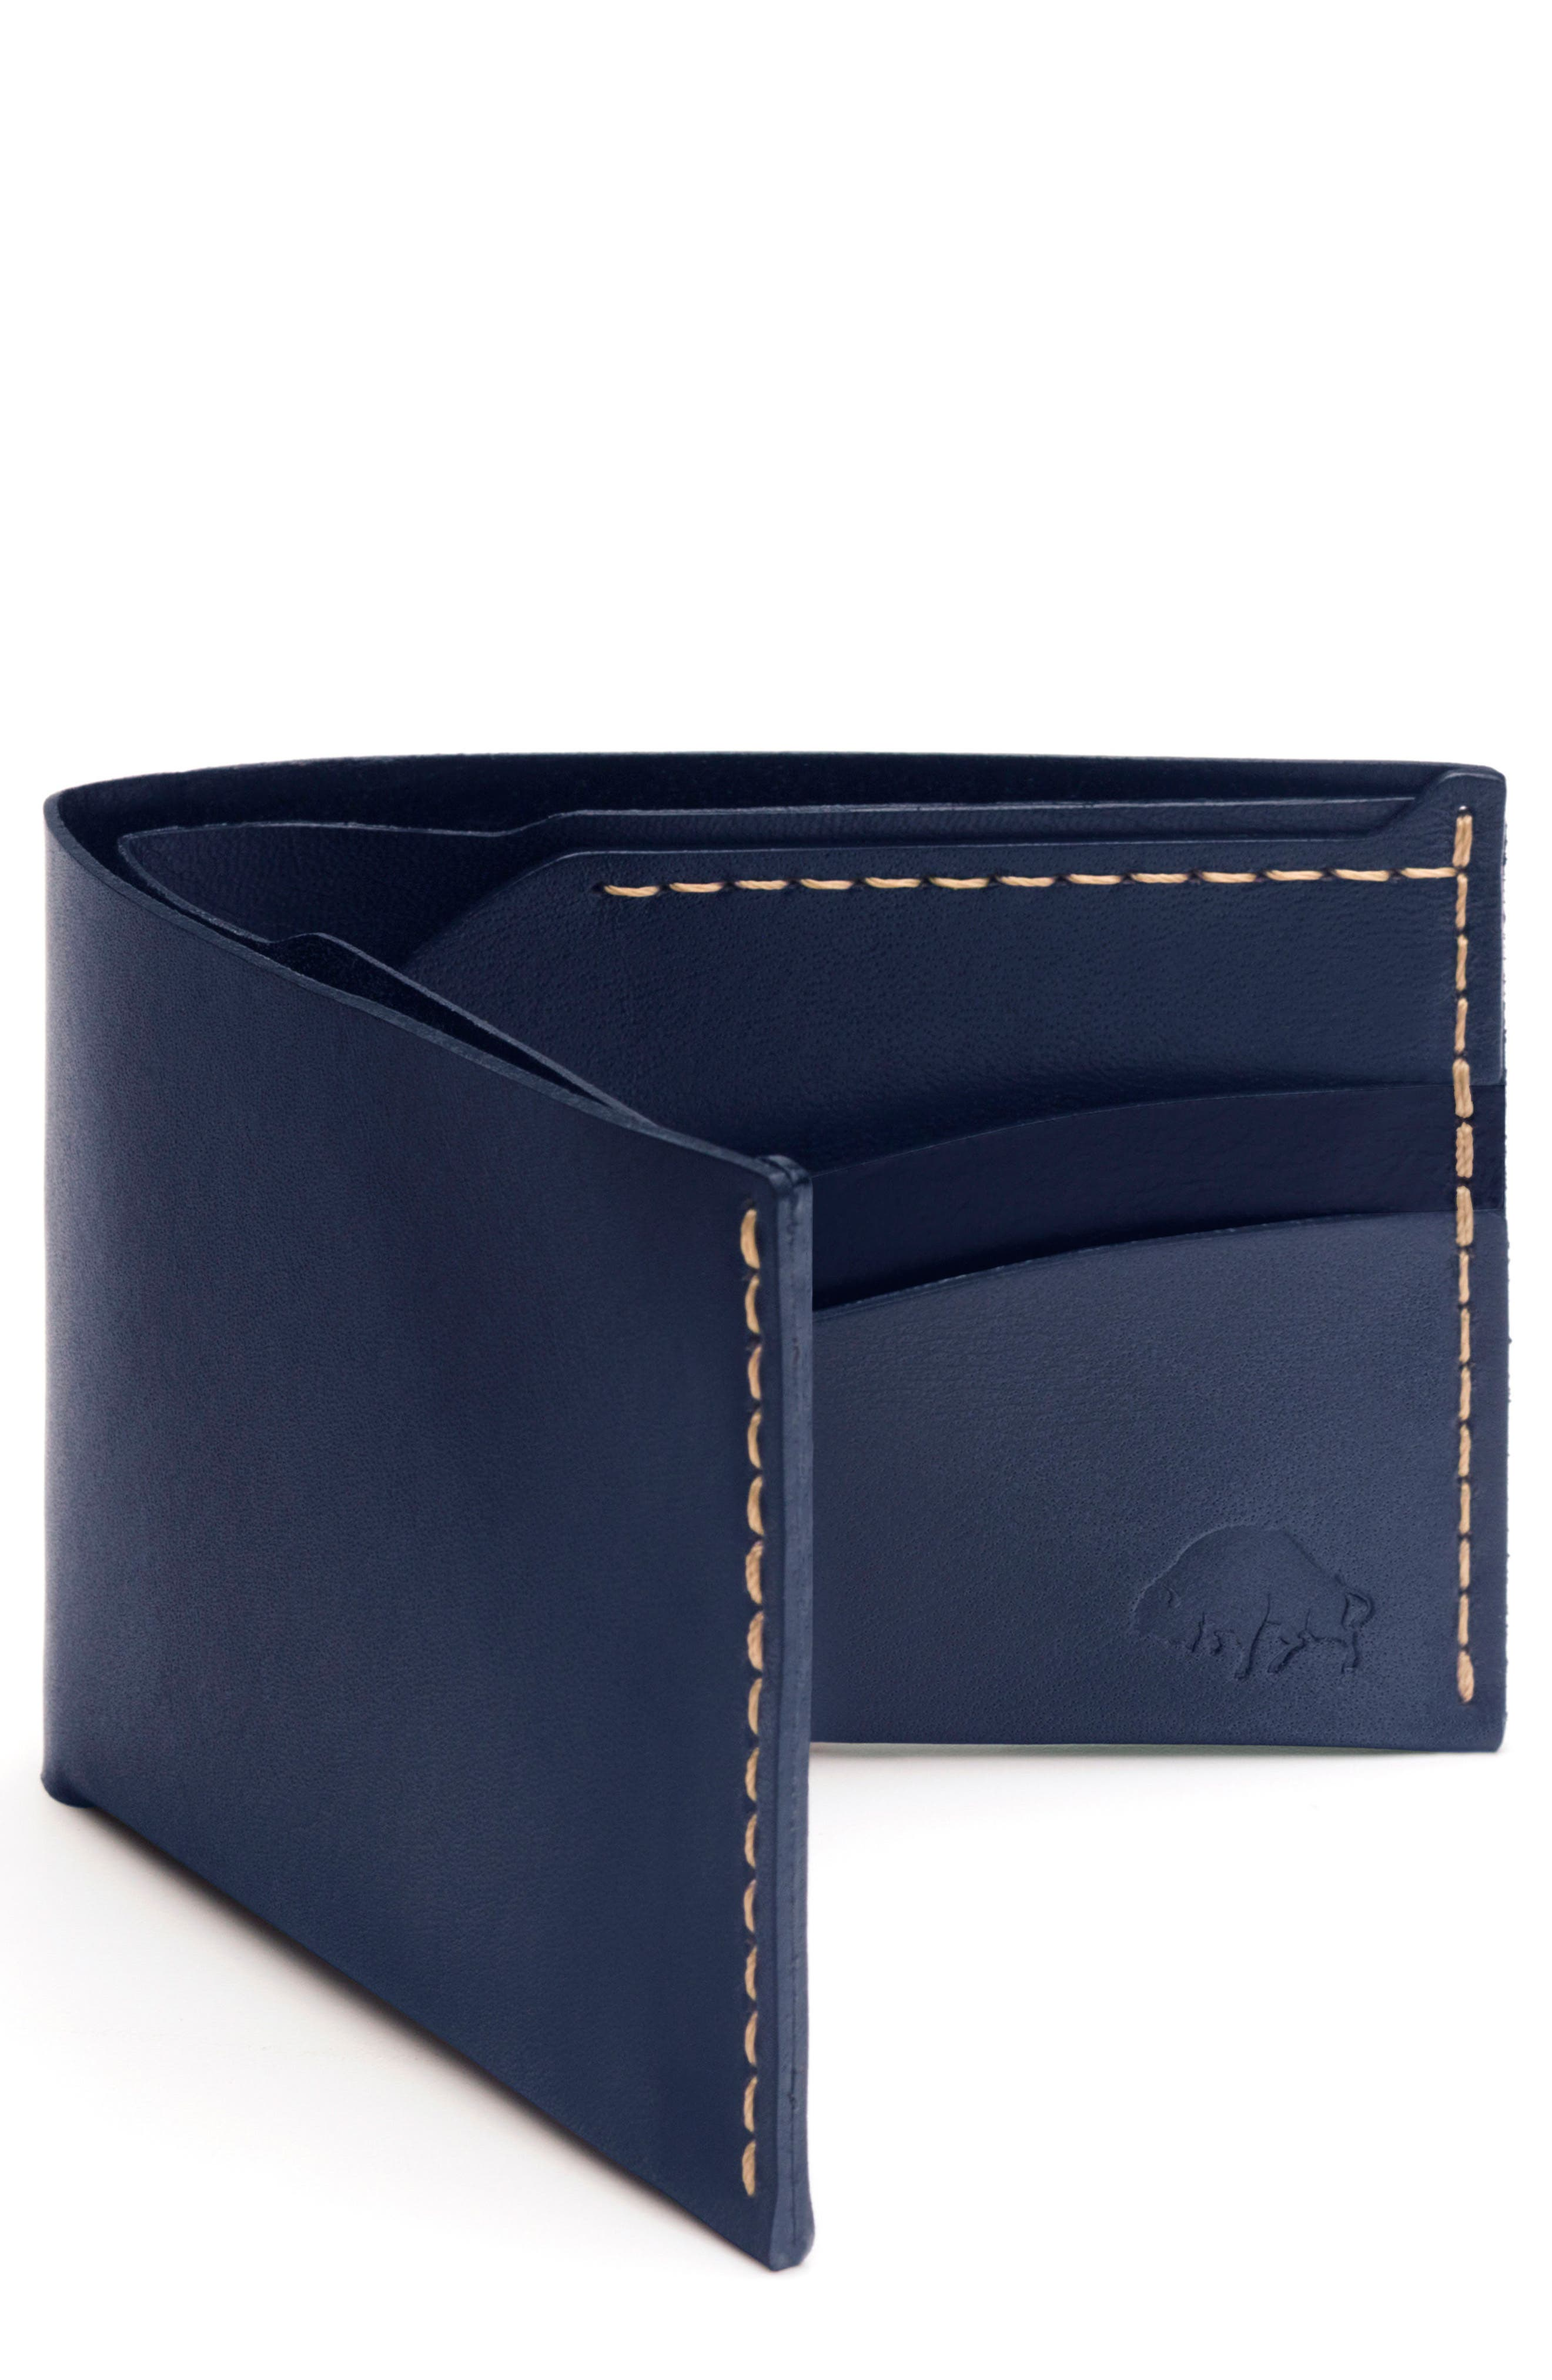 No. 6 Leather Wallet